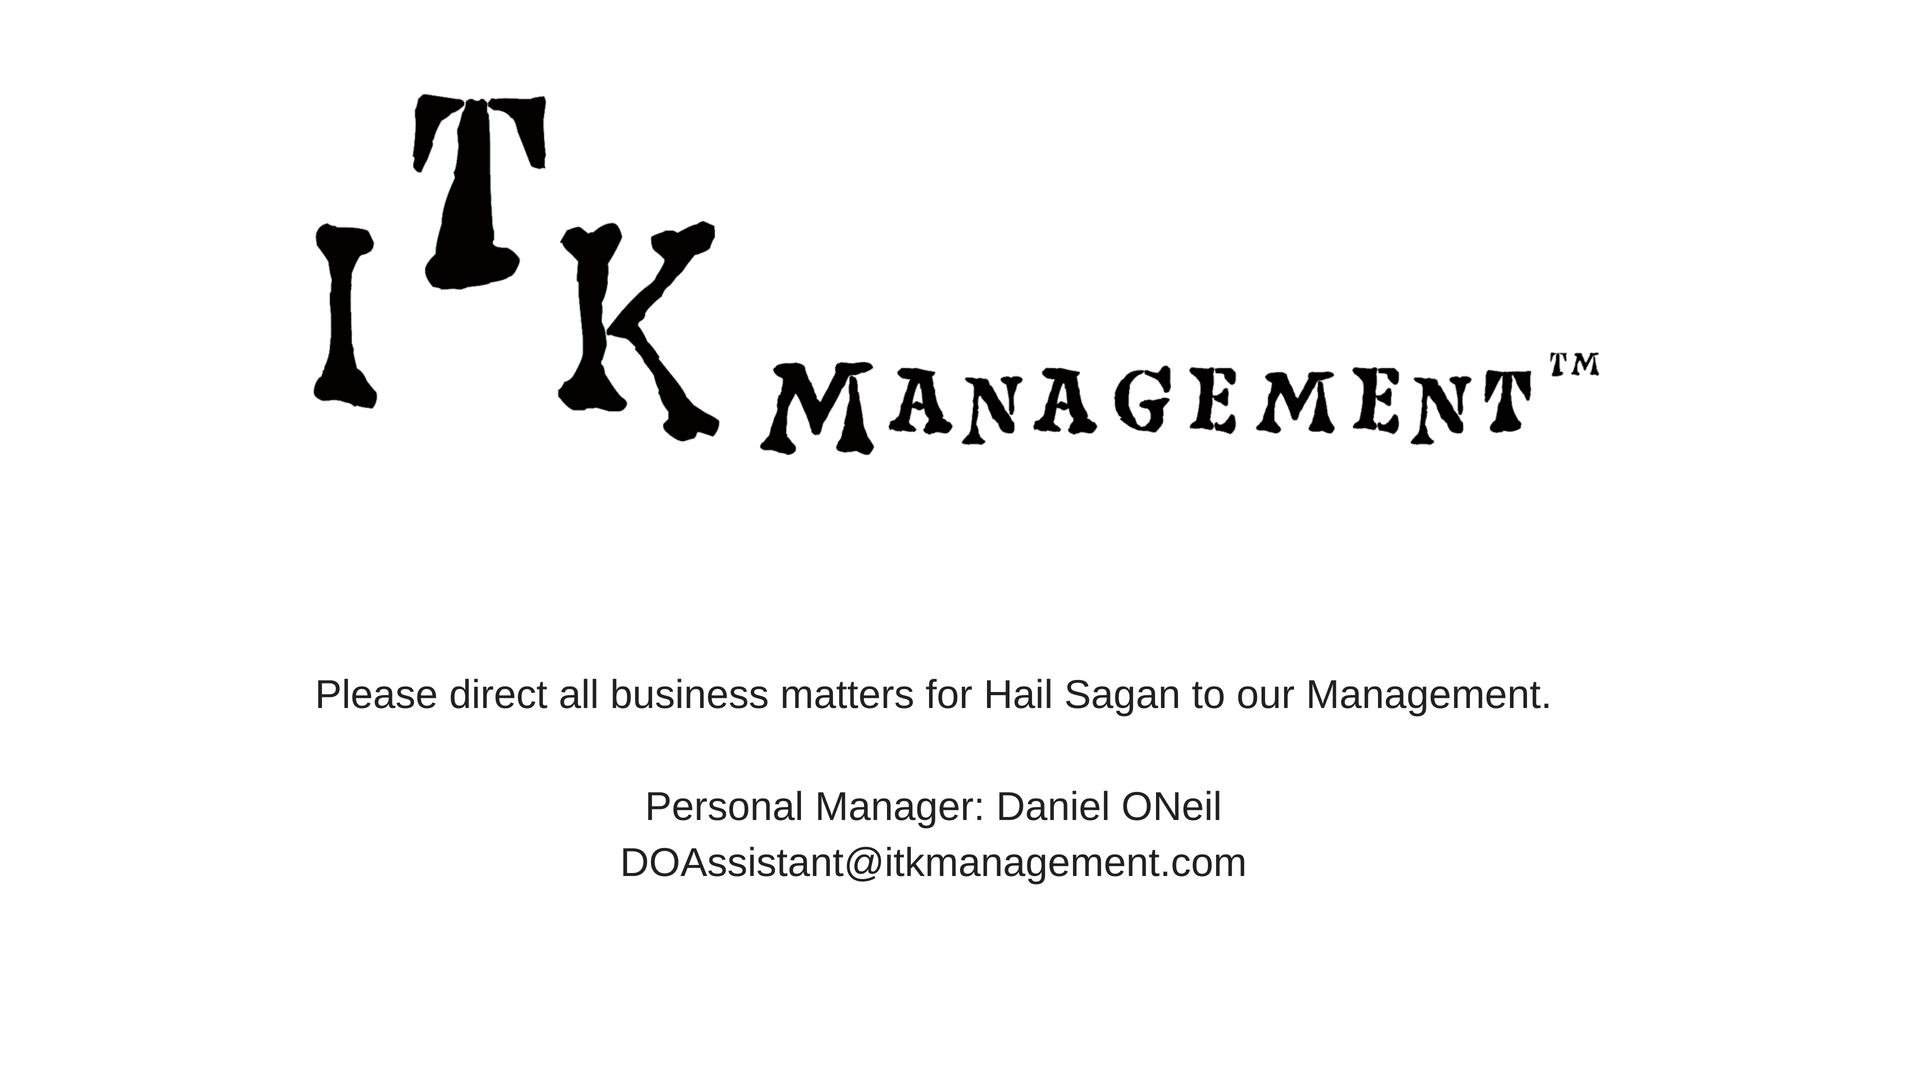 ITK Management, Daniel ONeil, Band manager, Hail Sagan, Hail Sagan band